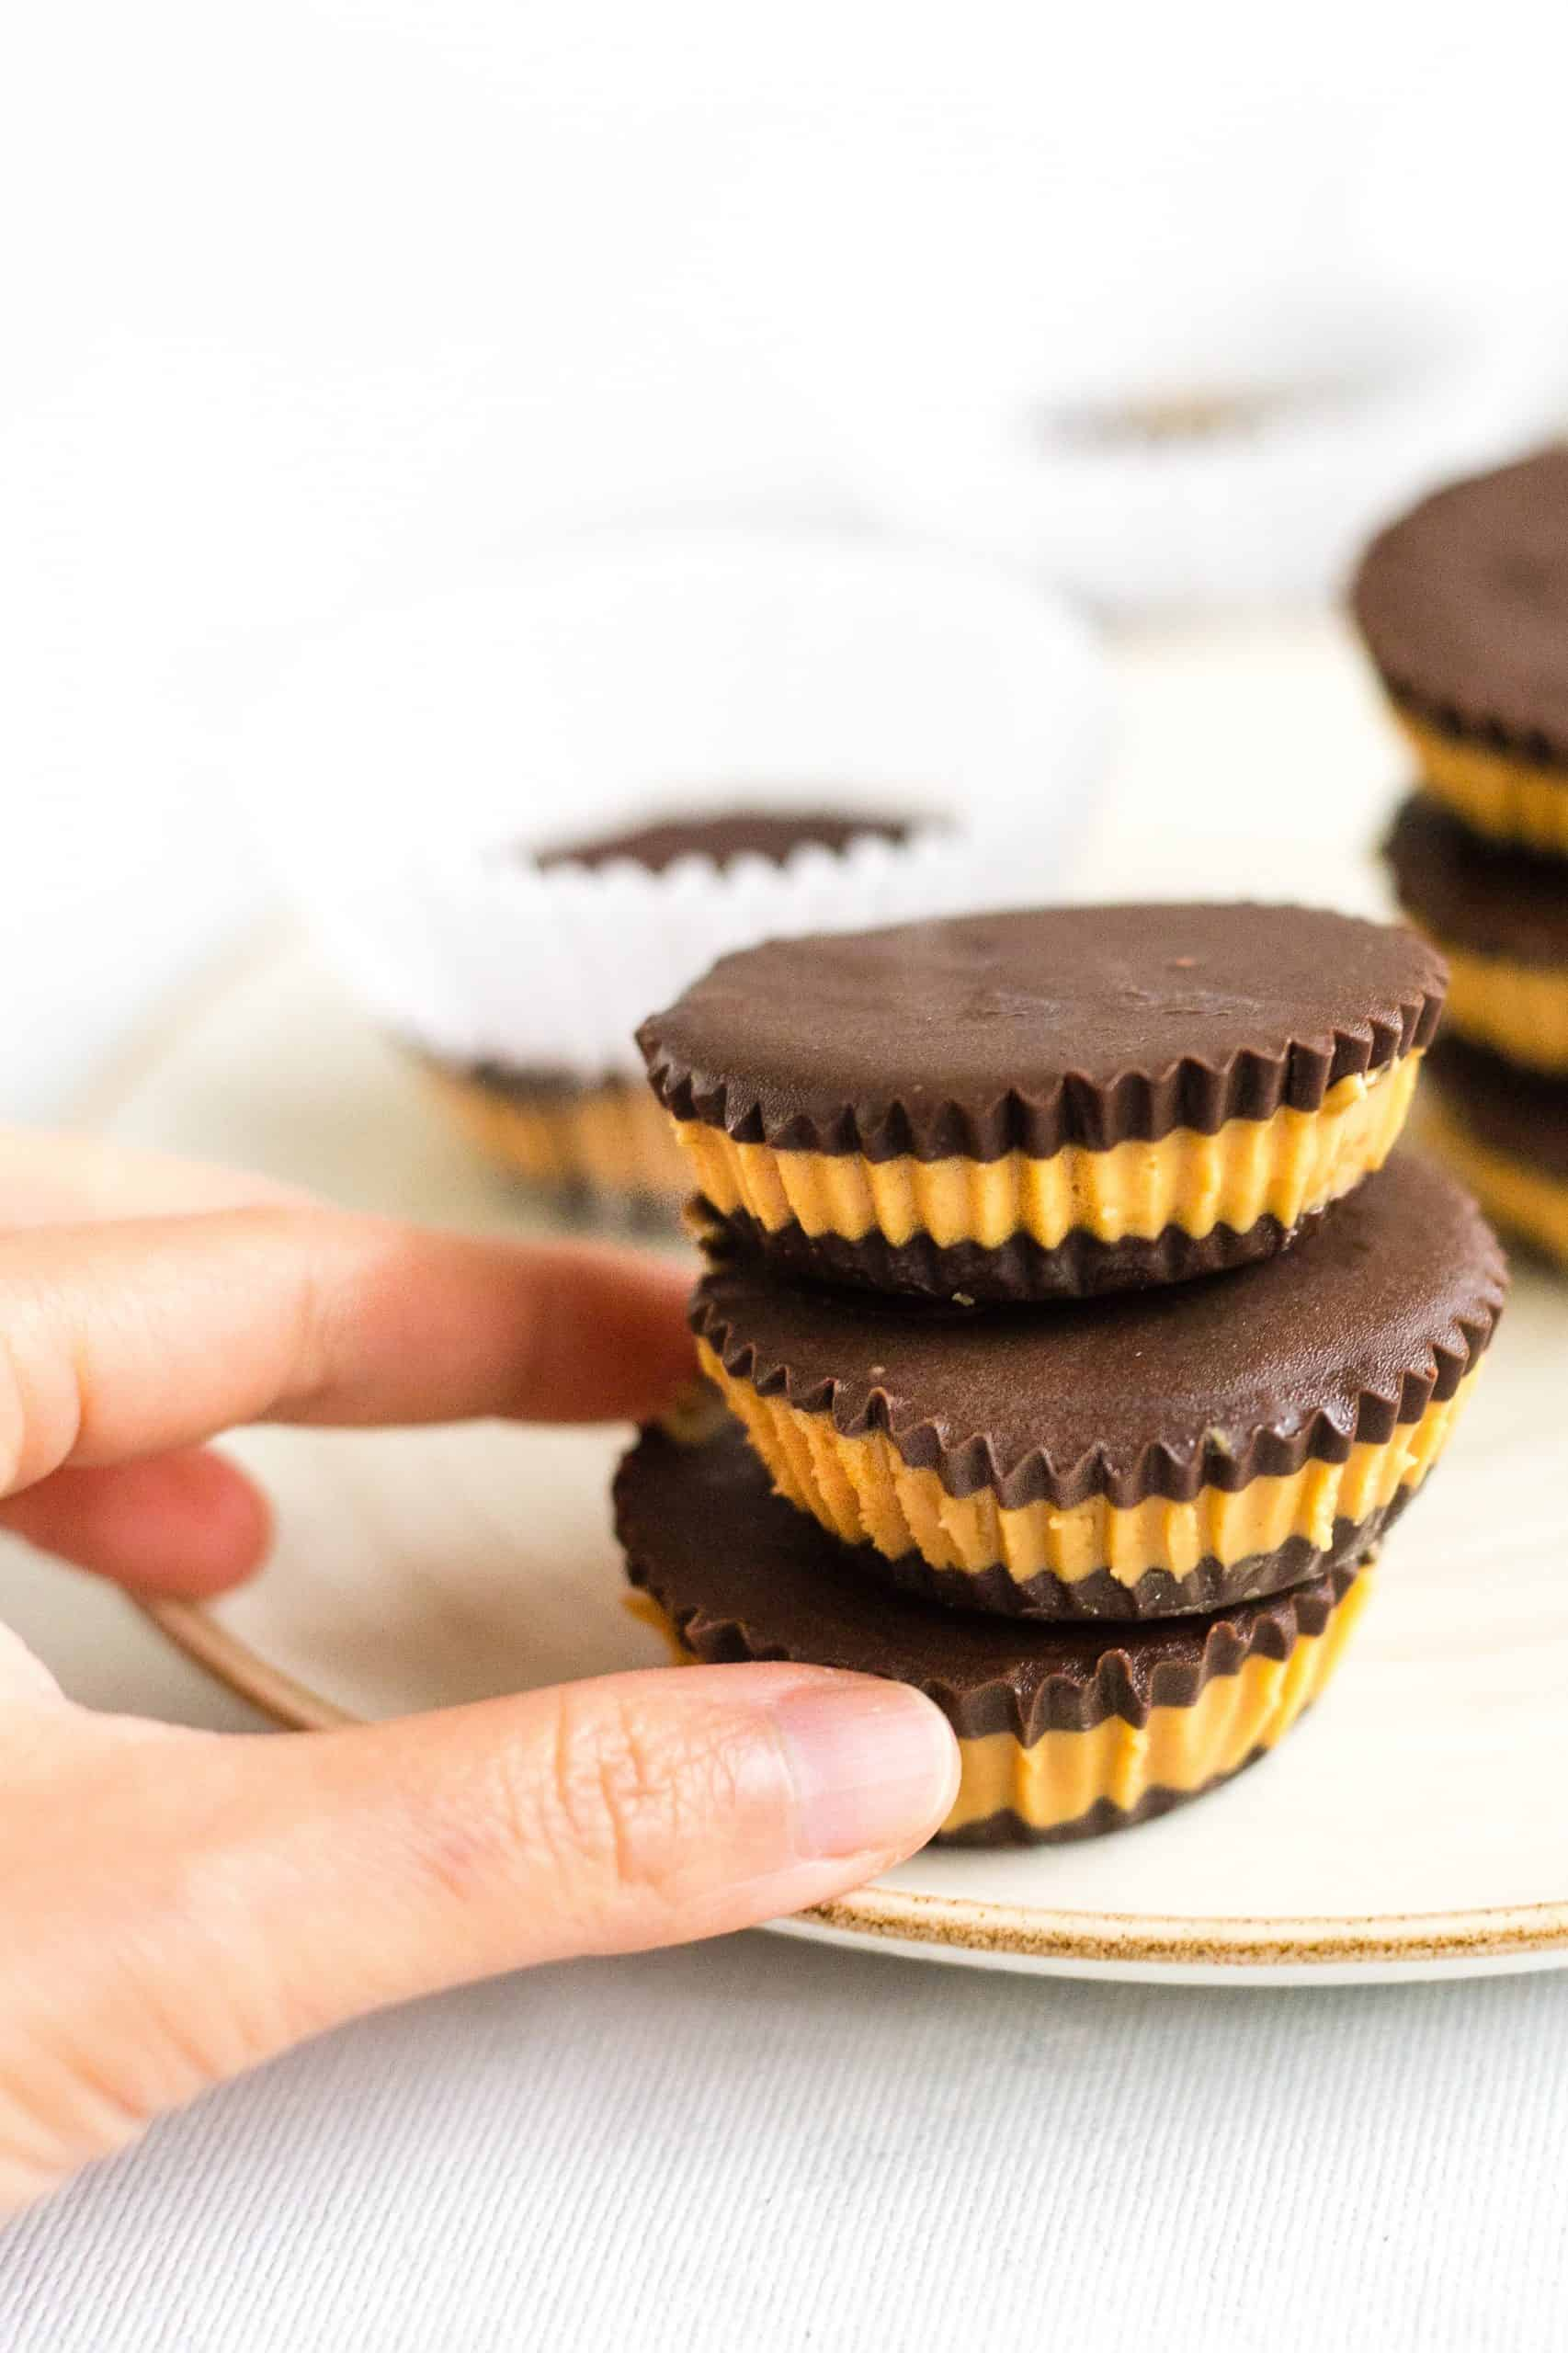 Hand reaching for a stack of chocolate peanut butter cups on a plate.